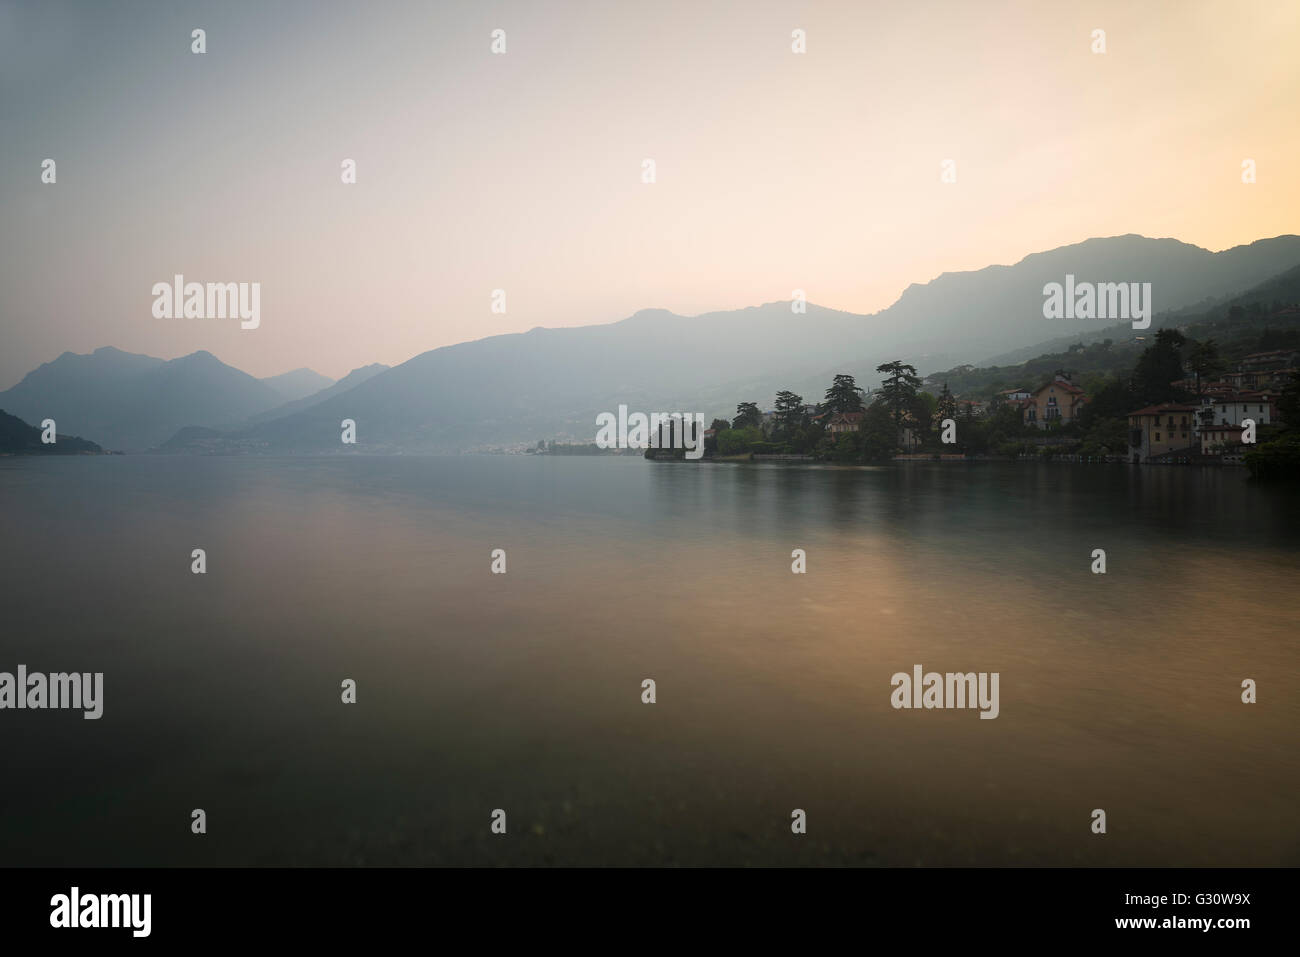 Panorama of scenery with mountains and villages at Lake Iseo at dawn shortly before golden sunrise,Sulzano,Lombardy,Italy - Stock Image